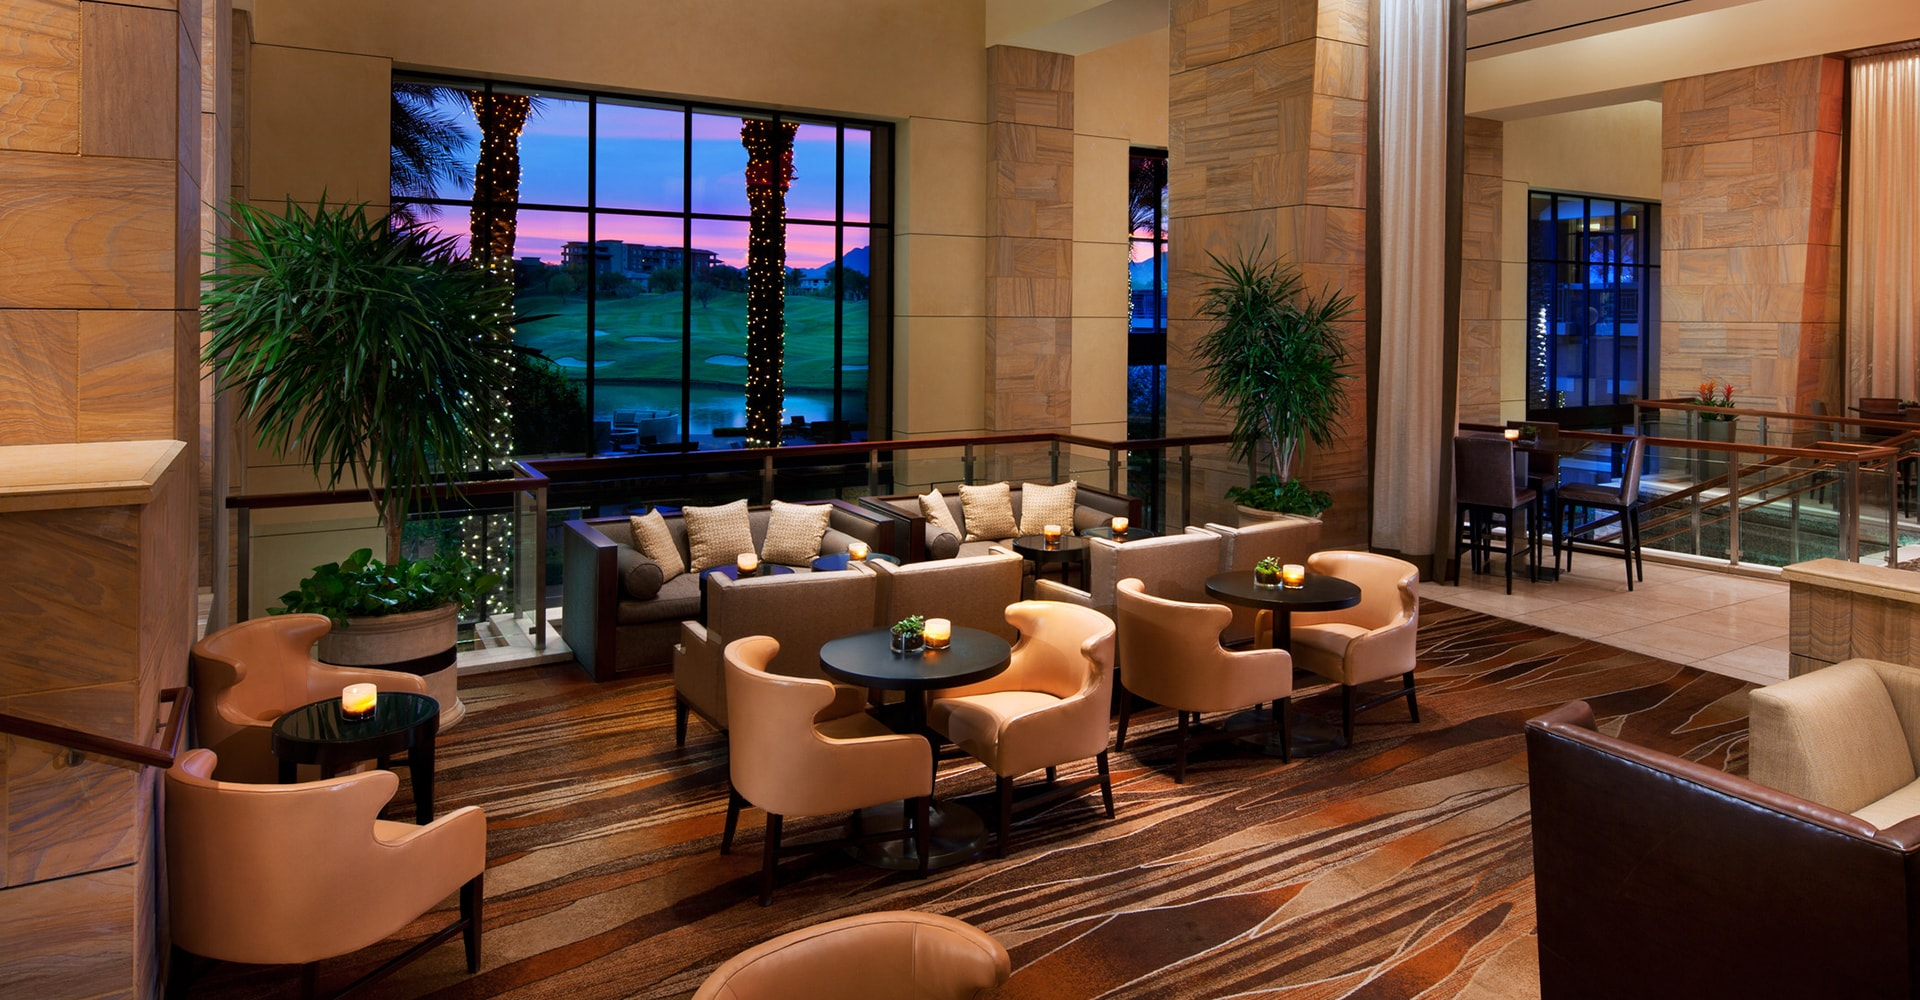 Kierland Westin Resort Lobby In Scottsdale Arizona